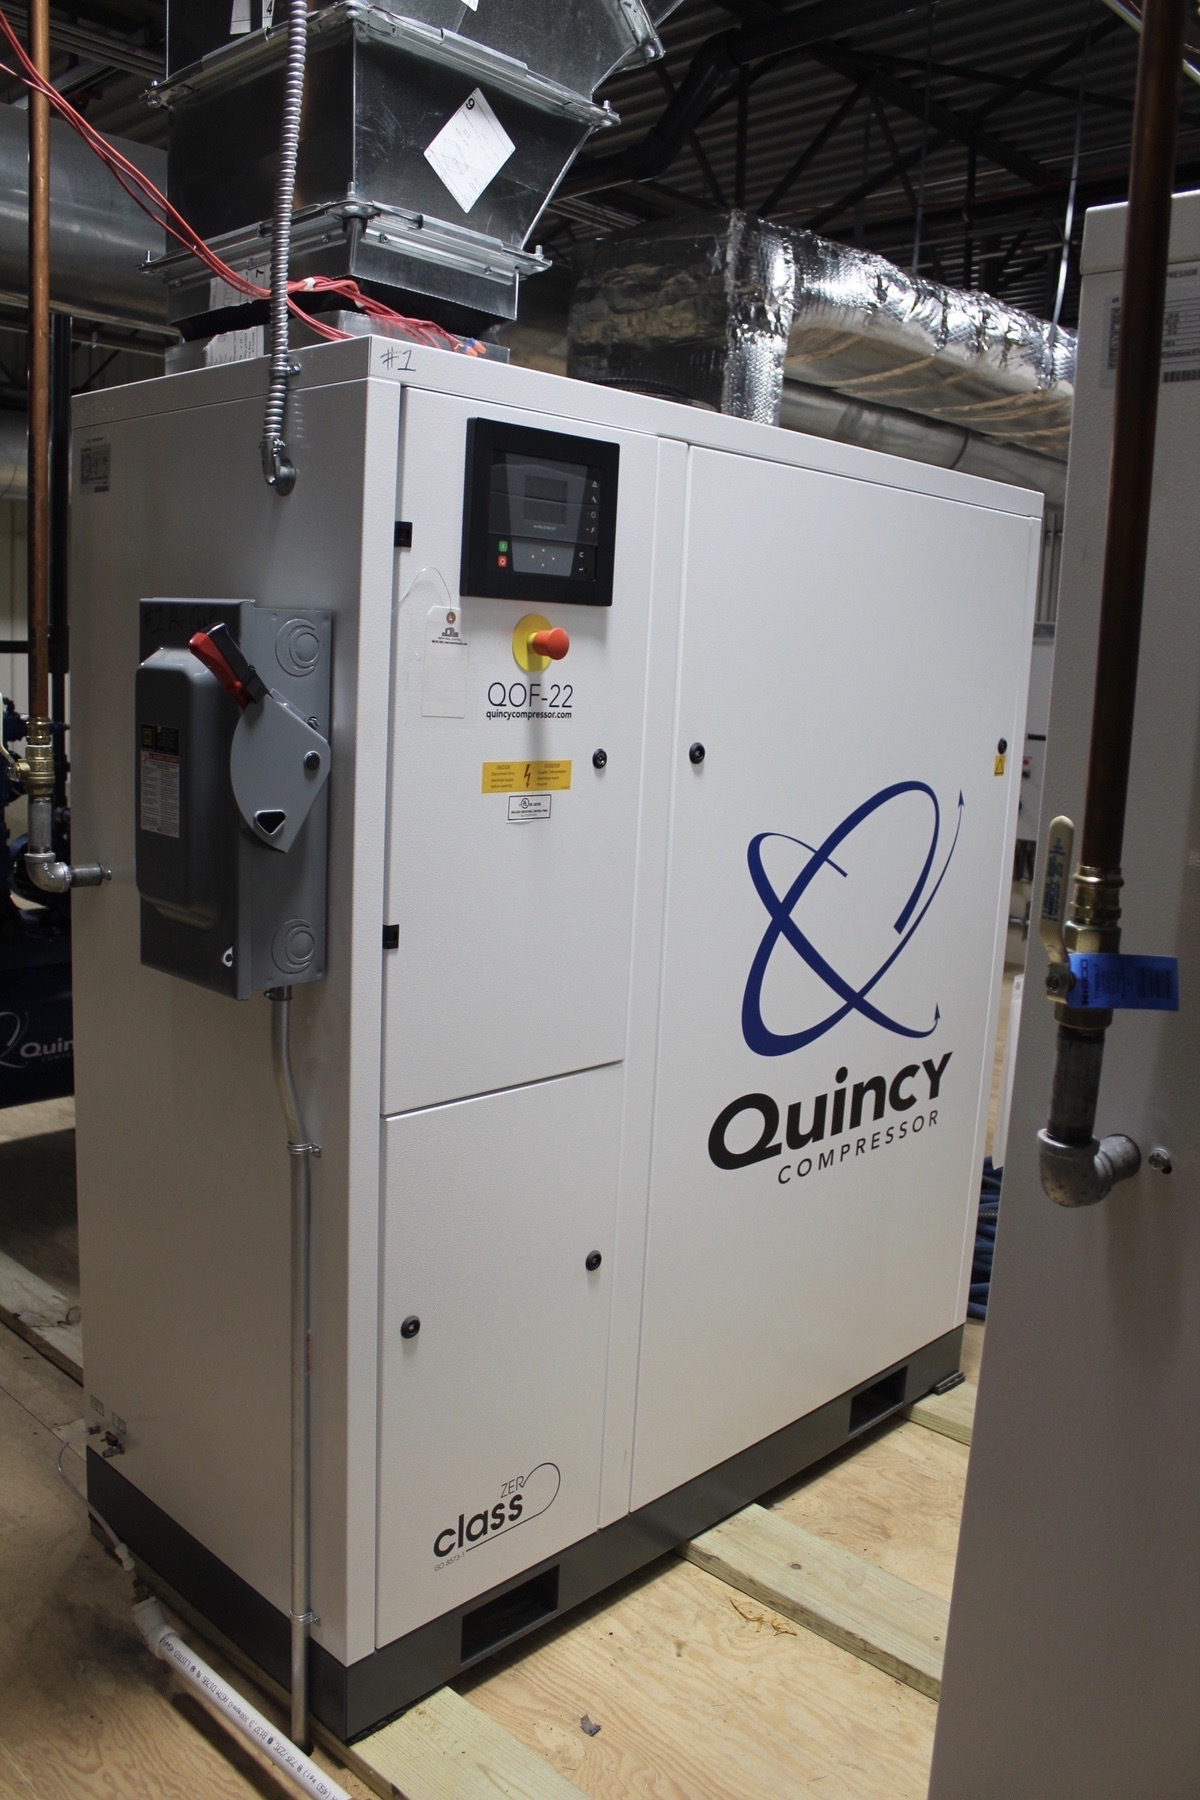 Lot 2 - Quincy ZER Class Rotary Screw Air Compressor, M# QOF-22, Type SPR22, S/N AP1771444, | Load Fee: $500